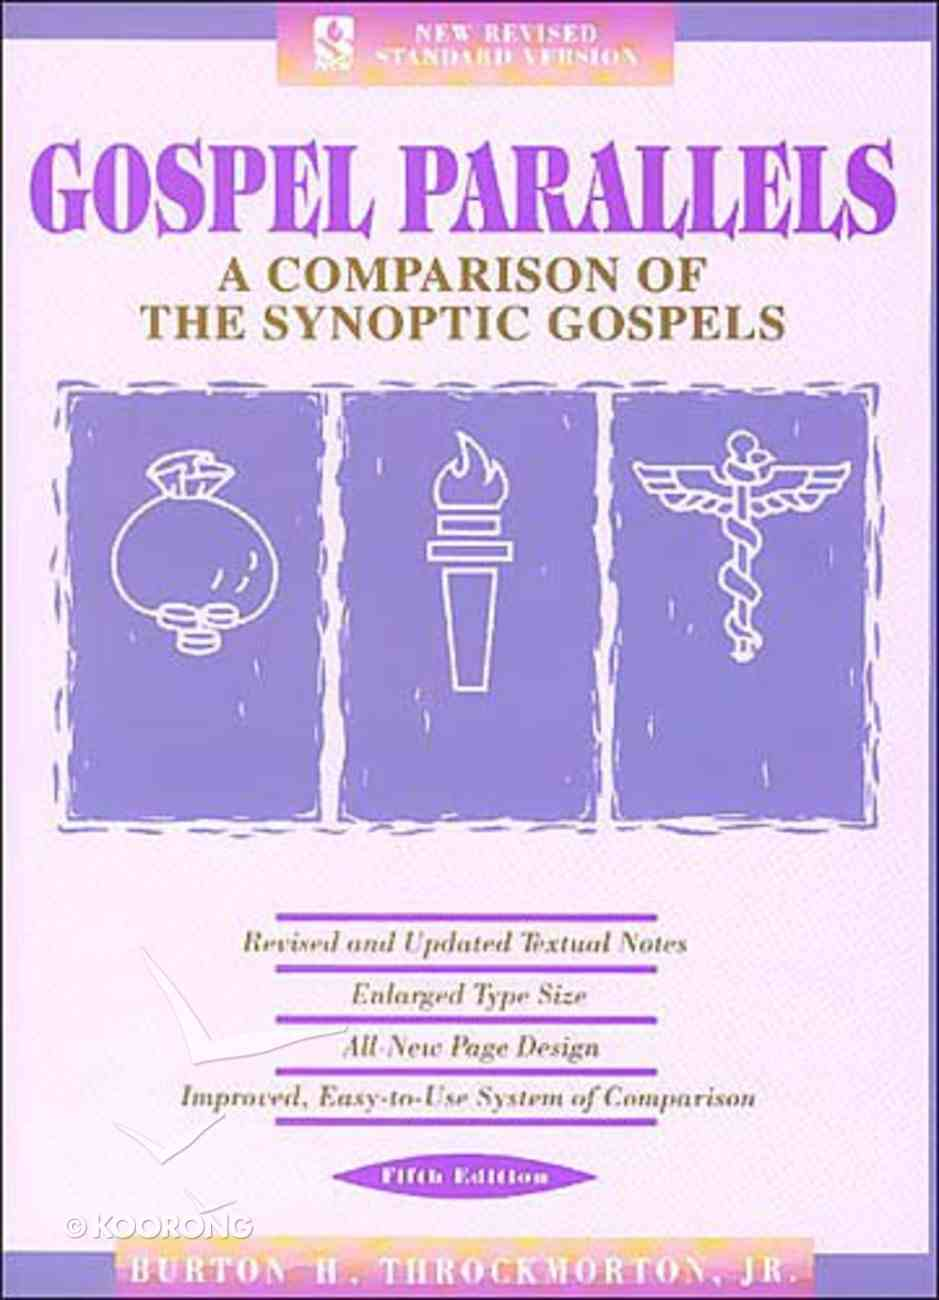 NRSV Gospel Parallels: A Comparison of the Synoptic Gospels (5th Edition) Hardback